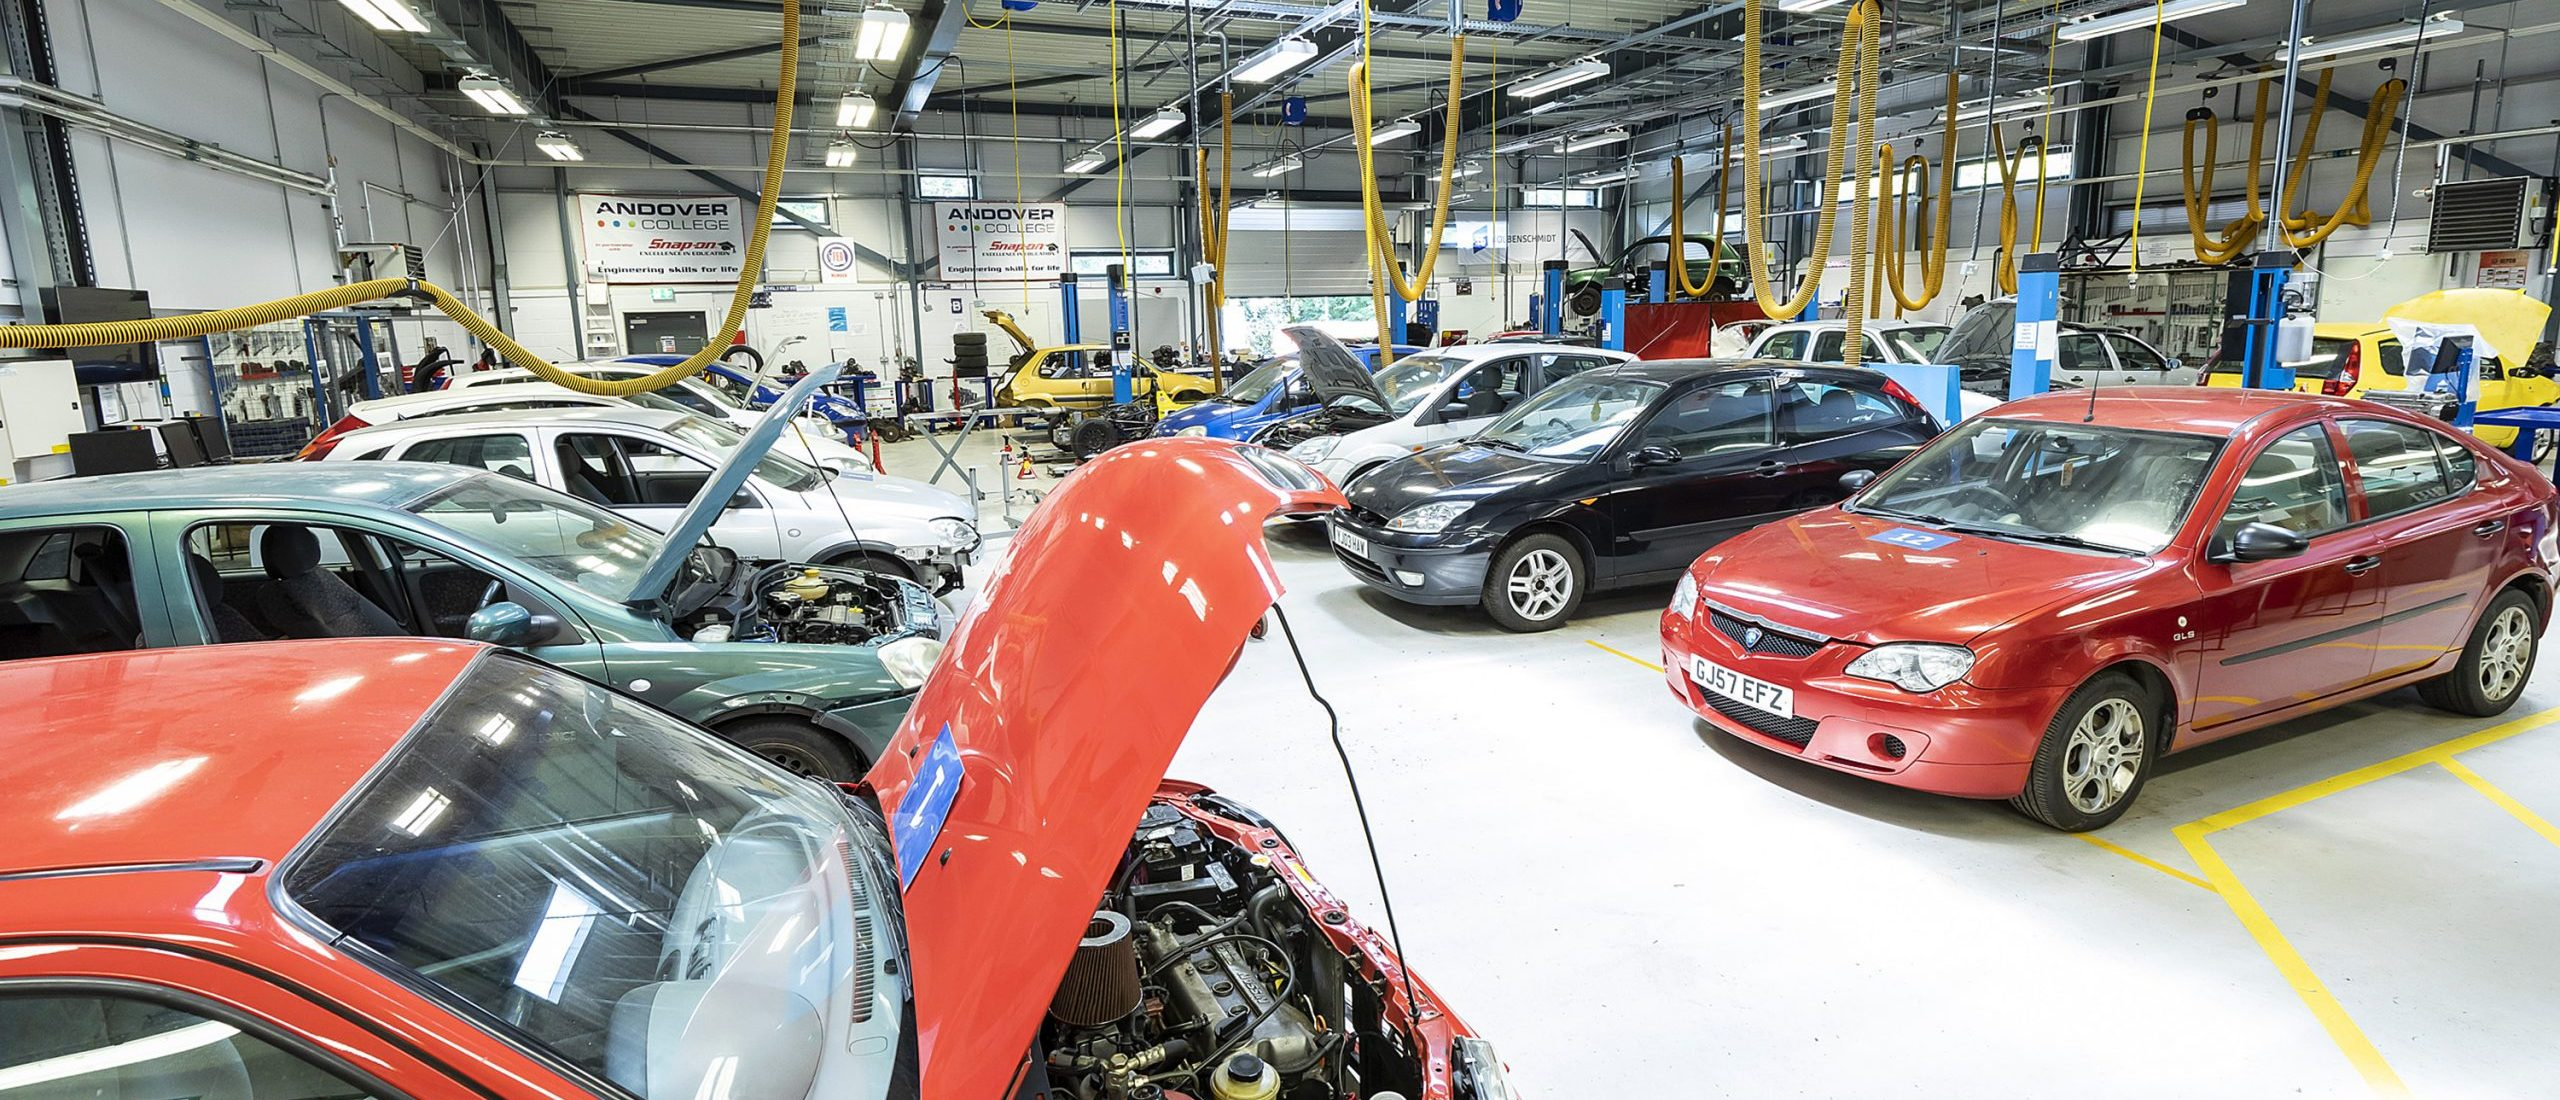 Motor Vehicle Facilities at Andover College